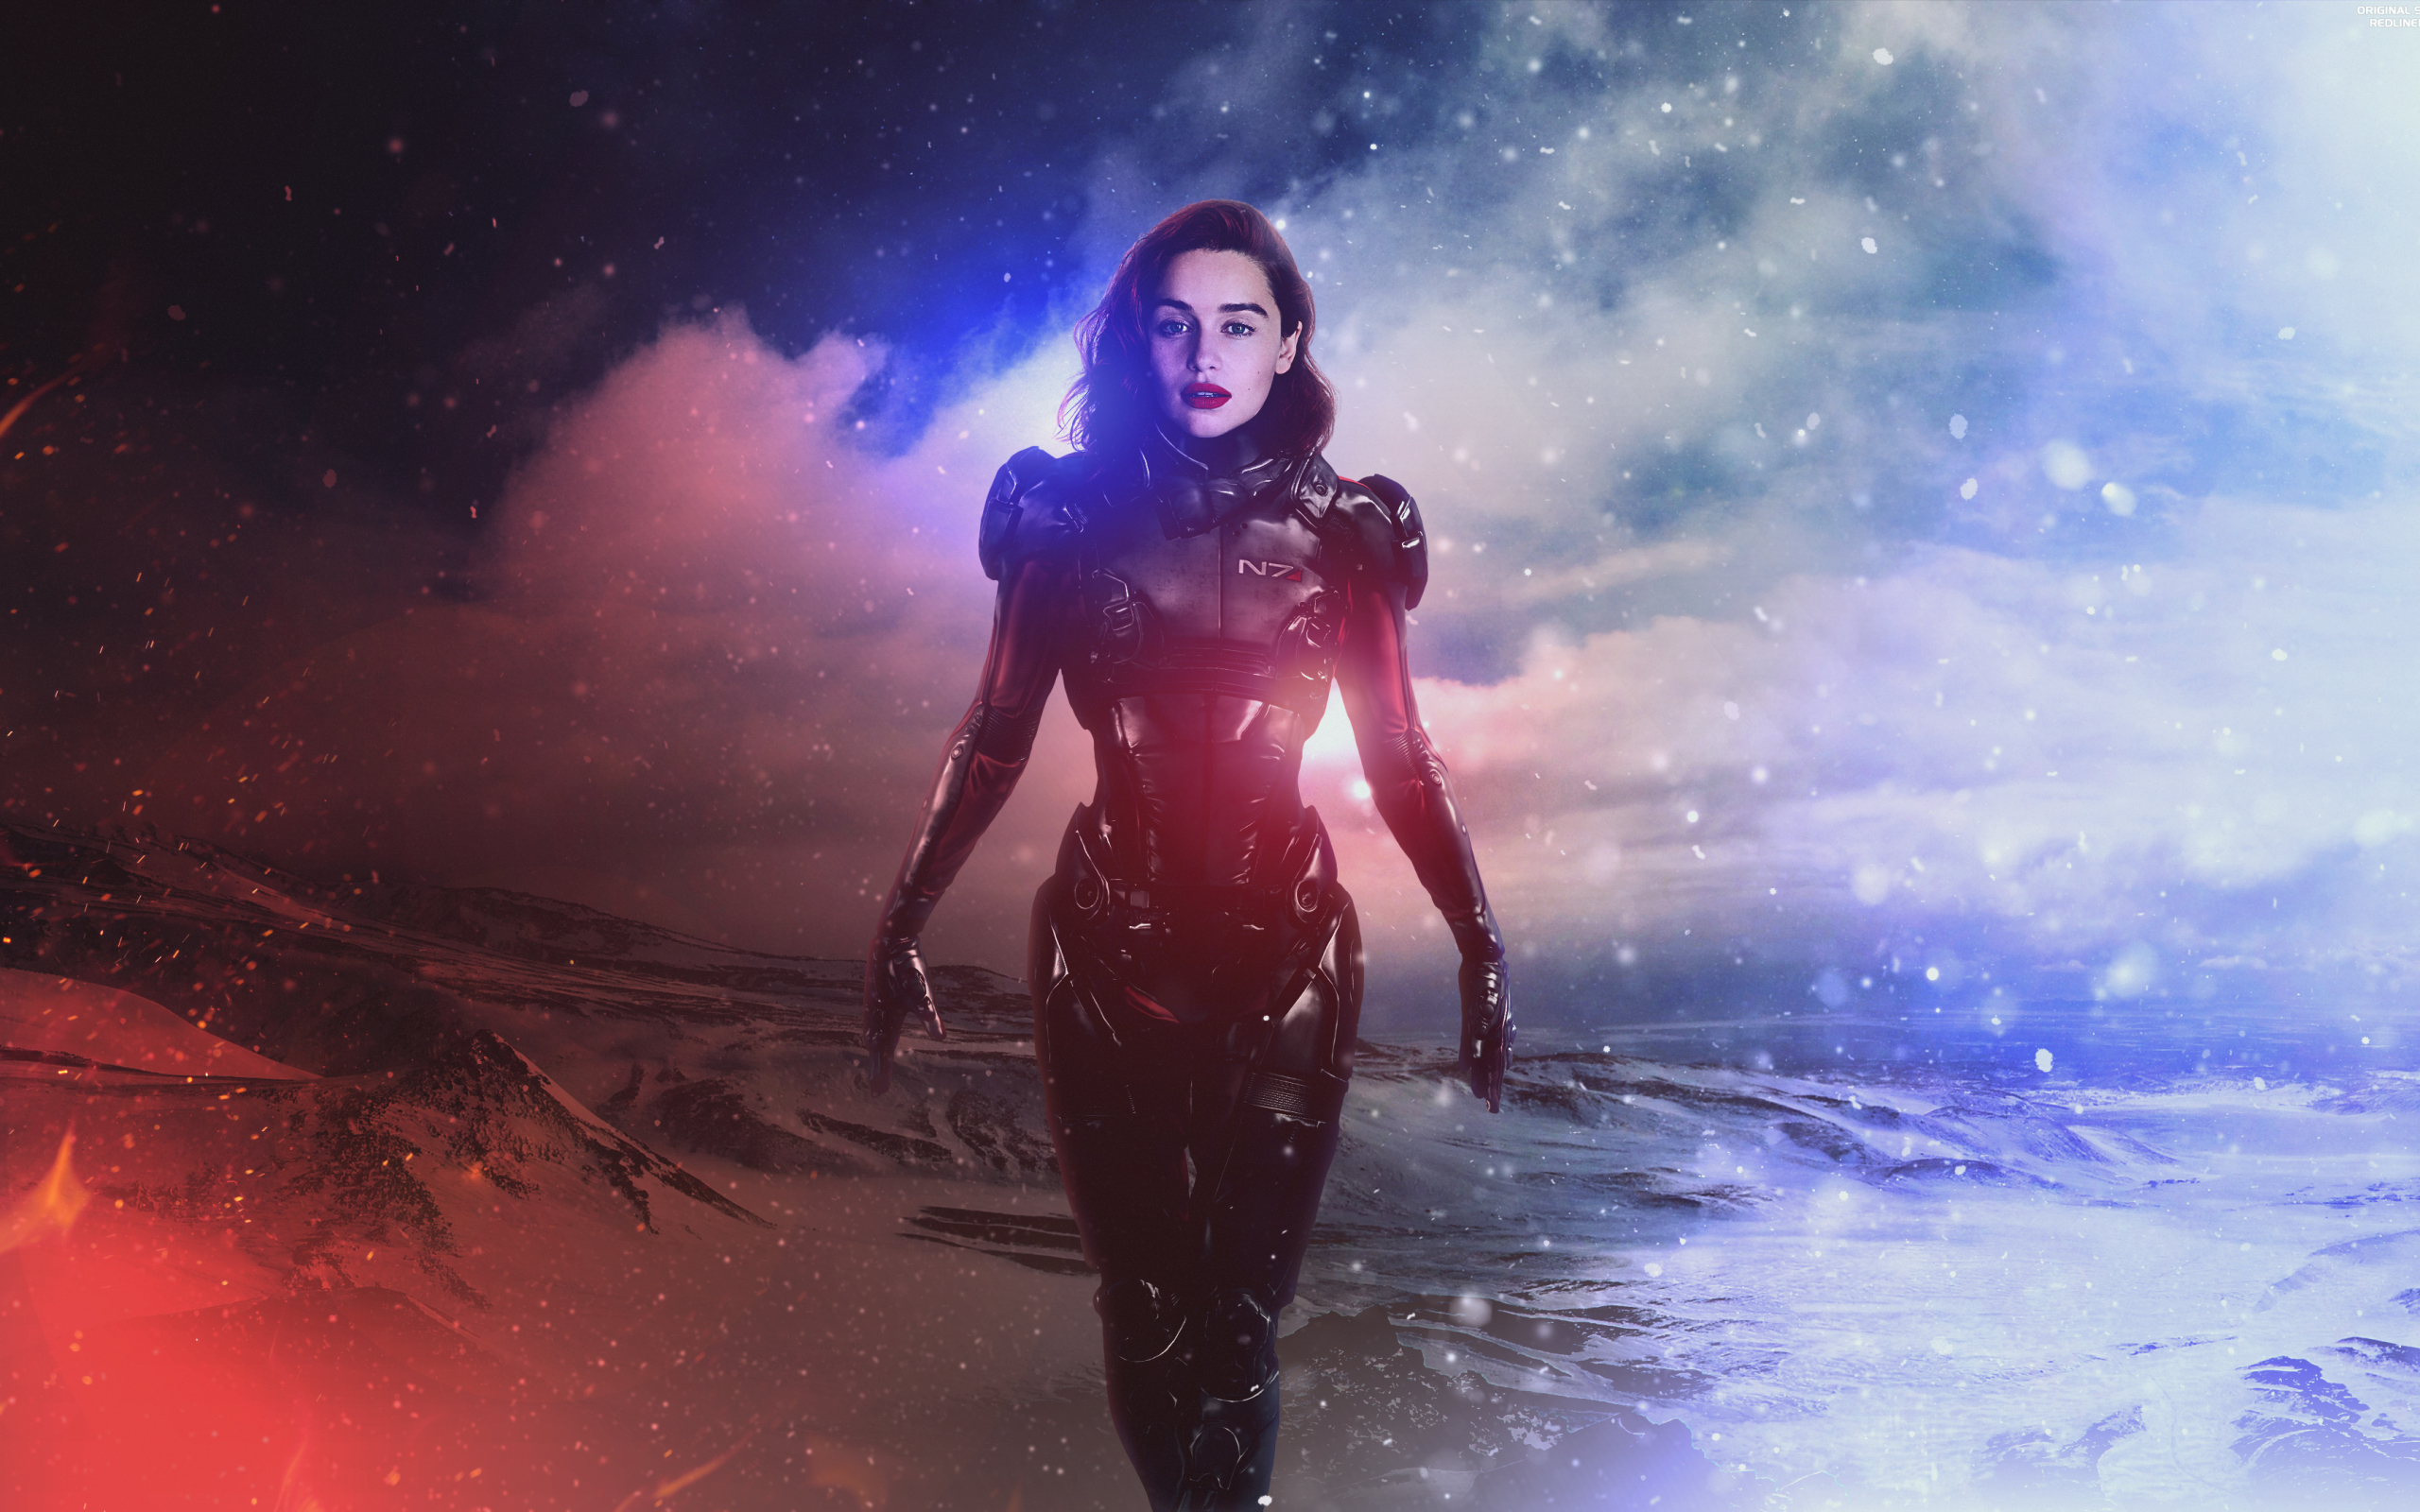 Wallpaper Of Emilia Clarke Fan Art Mass Effect Andromeda